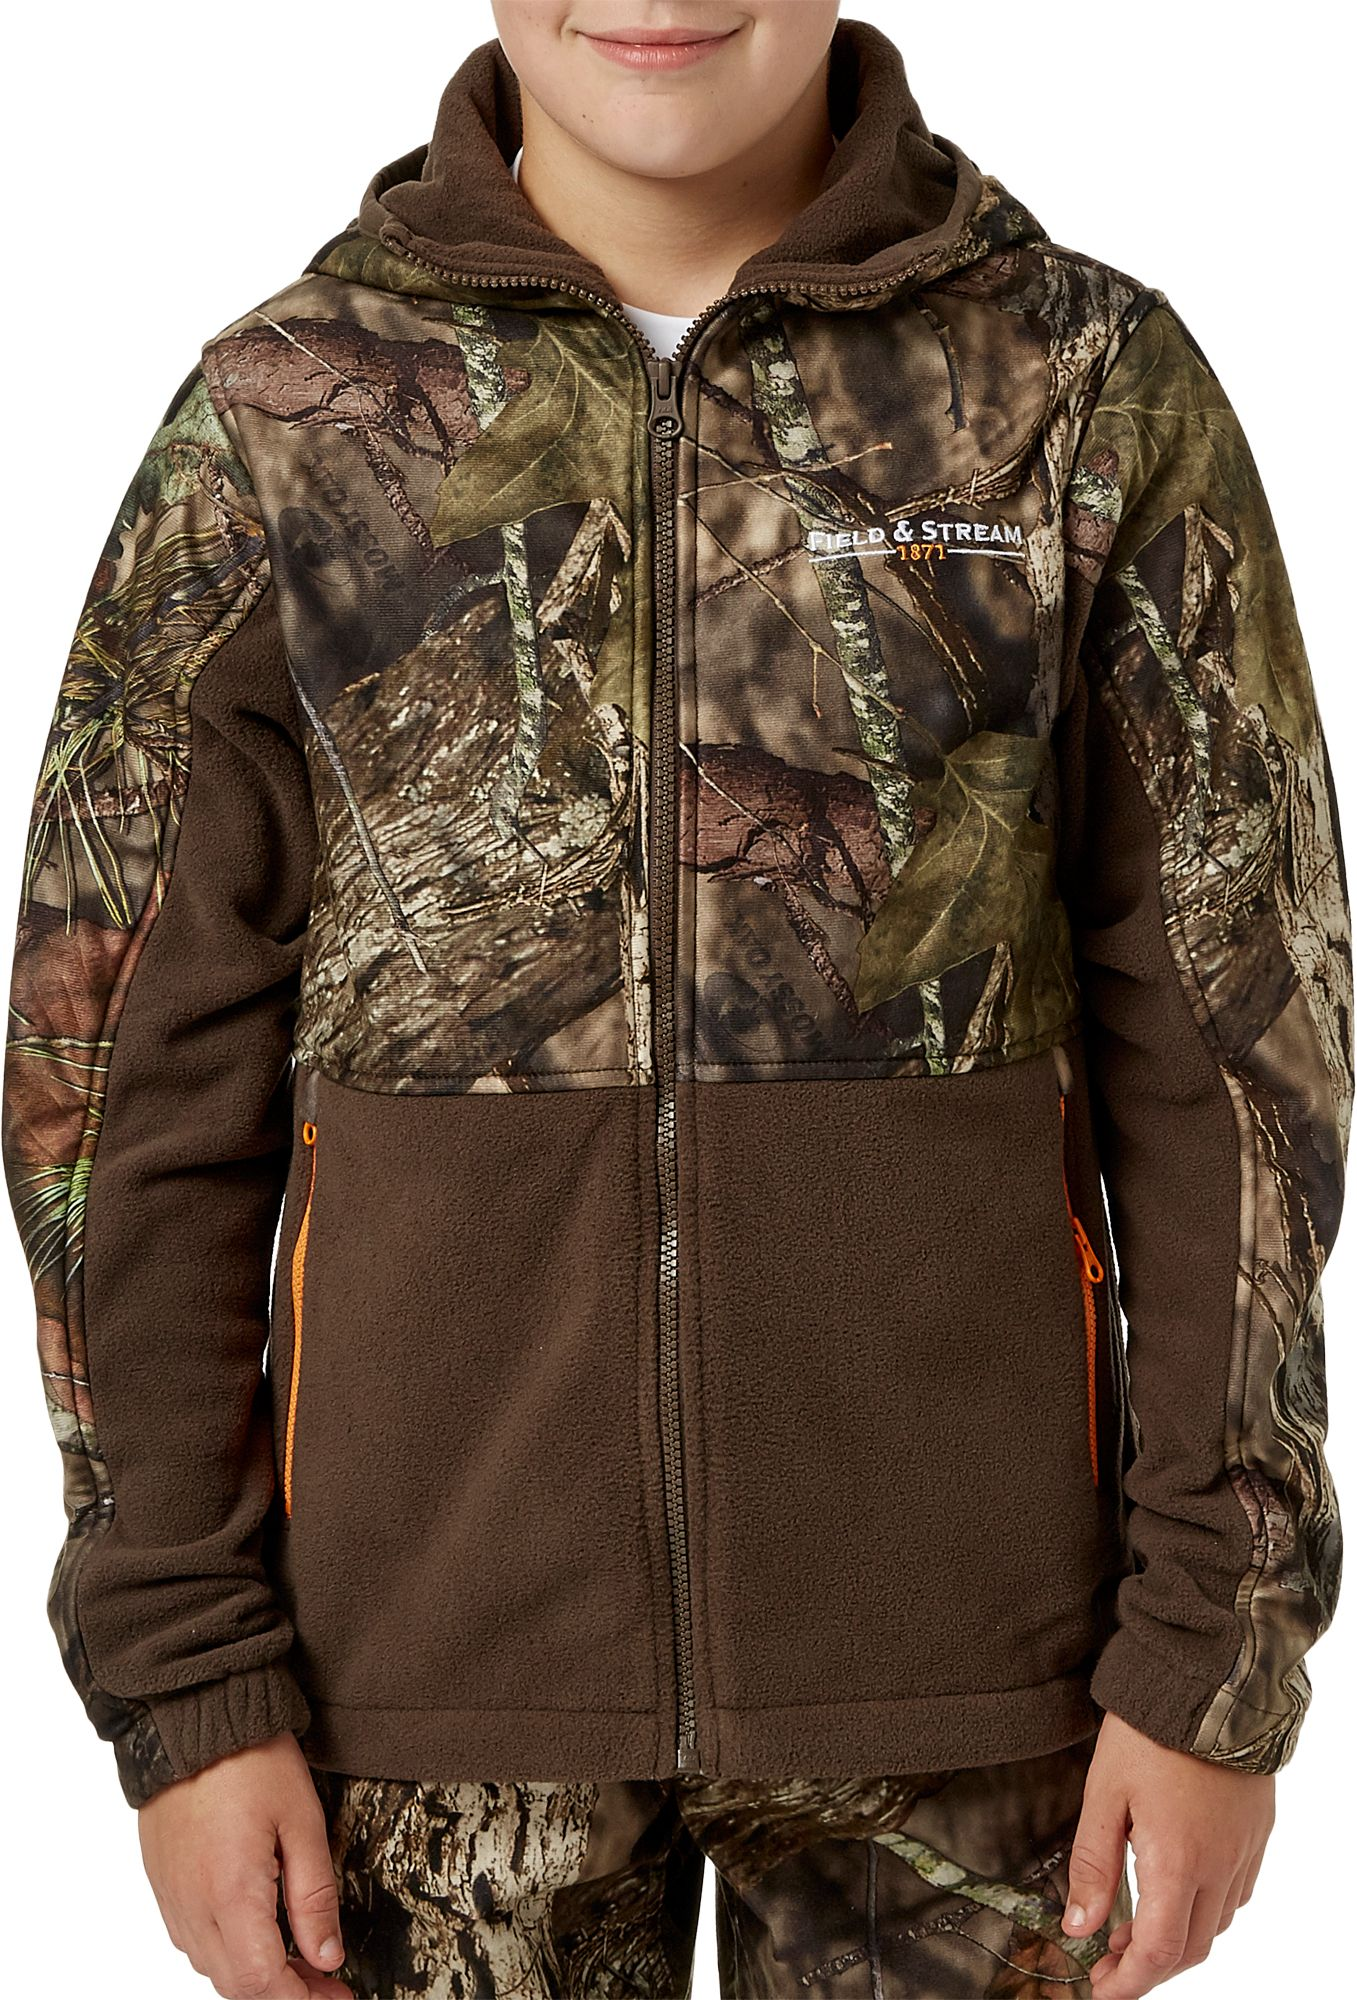 Field & Stream Youth Every Hunt Hooded Hunting Jacket, Kids, XL, Mossy Oak Country